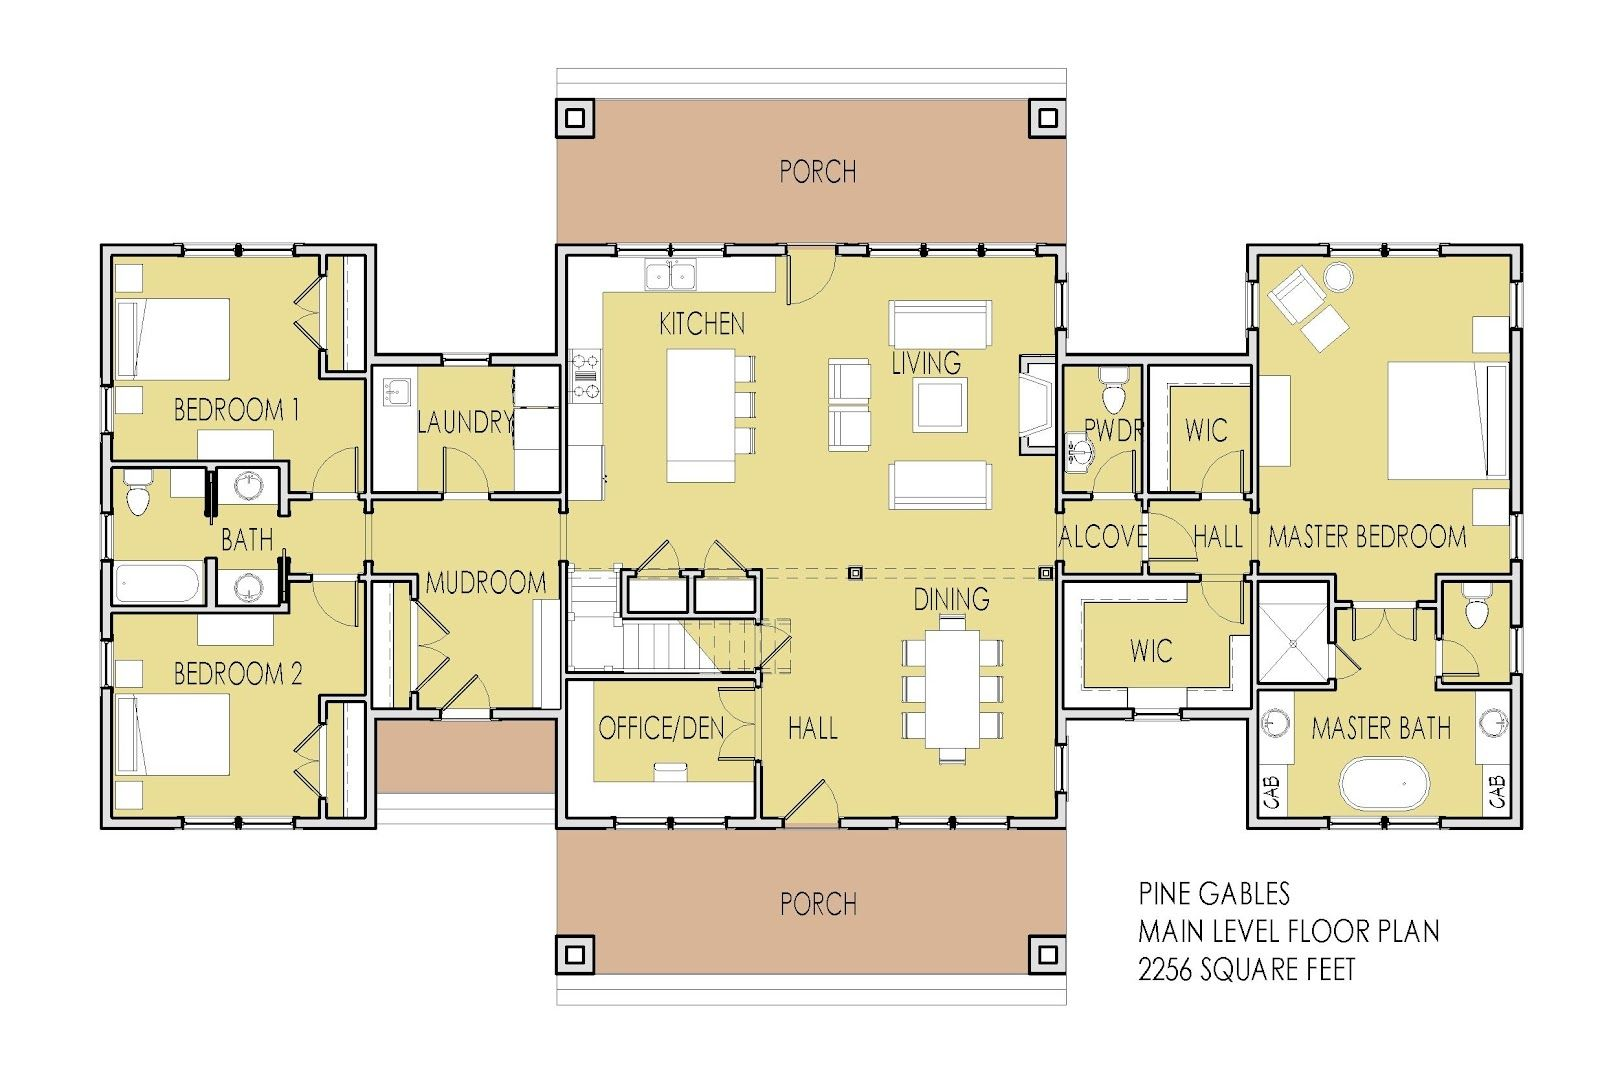 Image result for single story dual master suite floor plans ... on double split master floor plans, two master suites plans, master bedroom with bathroom plans, master bedroom floor plans, double wide mobile home carports, ranch bunkhouse plans, heather gardens floor plans, double porch house plans, double fireplace house plans, 16x70 mobile home floor plans, double wide mobile home doors, twin mastersuite house plans, double master home plans, multi-generational homes floor plans, double master house plans, bedroom design plans, double deck house plans, bedroom suite plans, cute 2 bedroom home plans, champion mobile home floor plans,